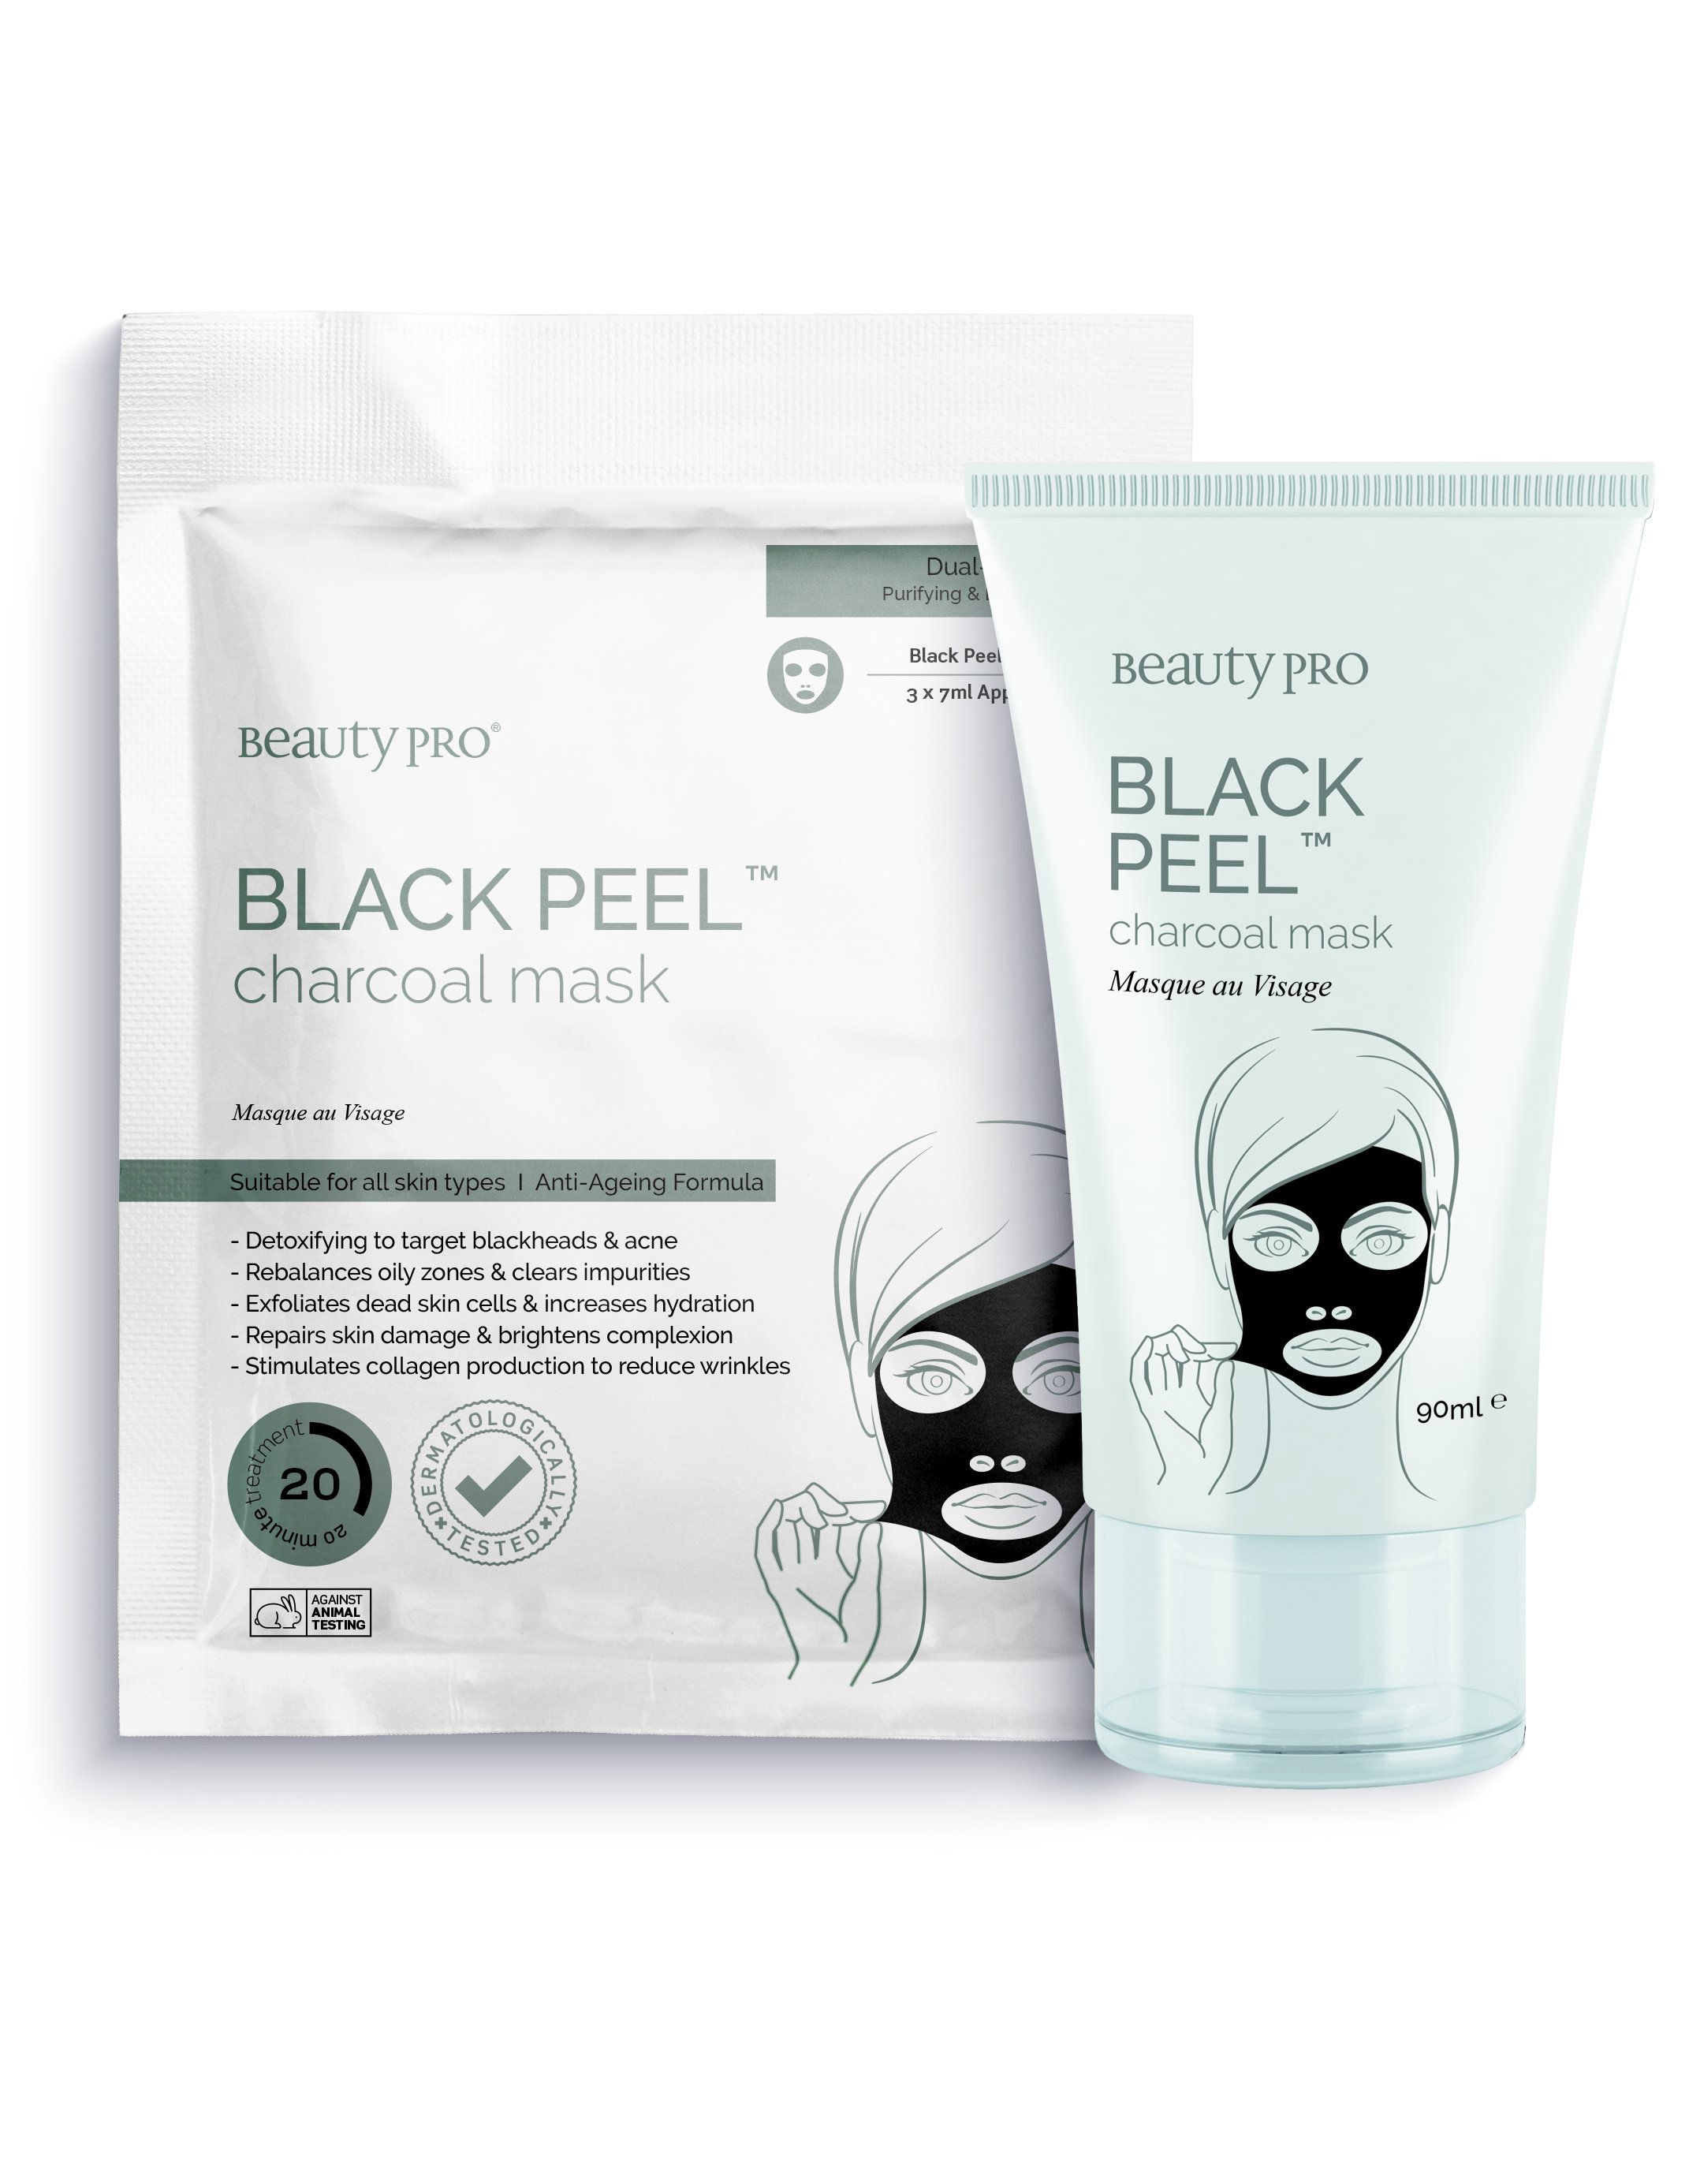 Beauty Pro BlackPeel